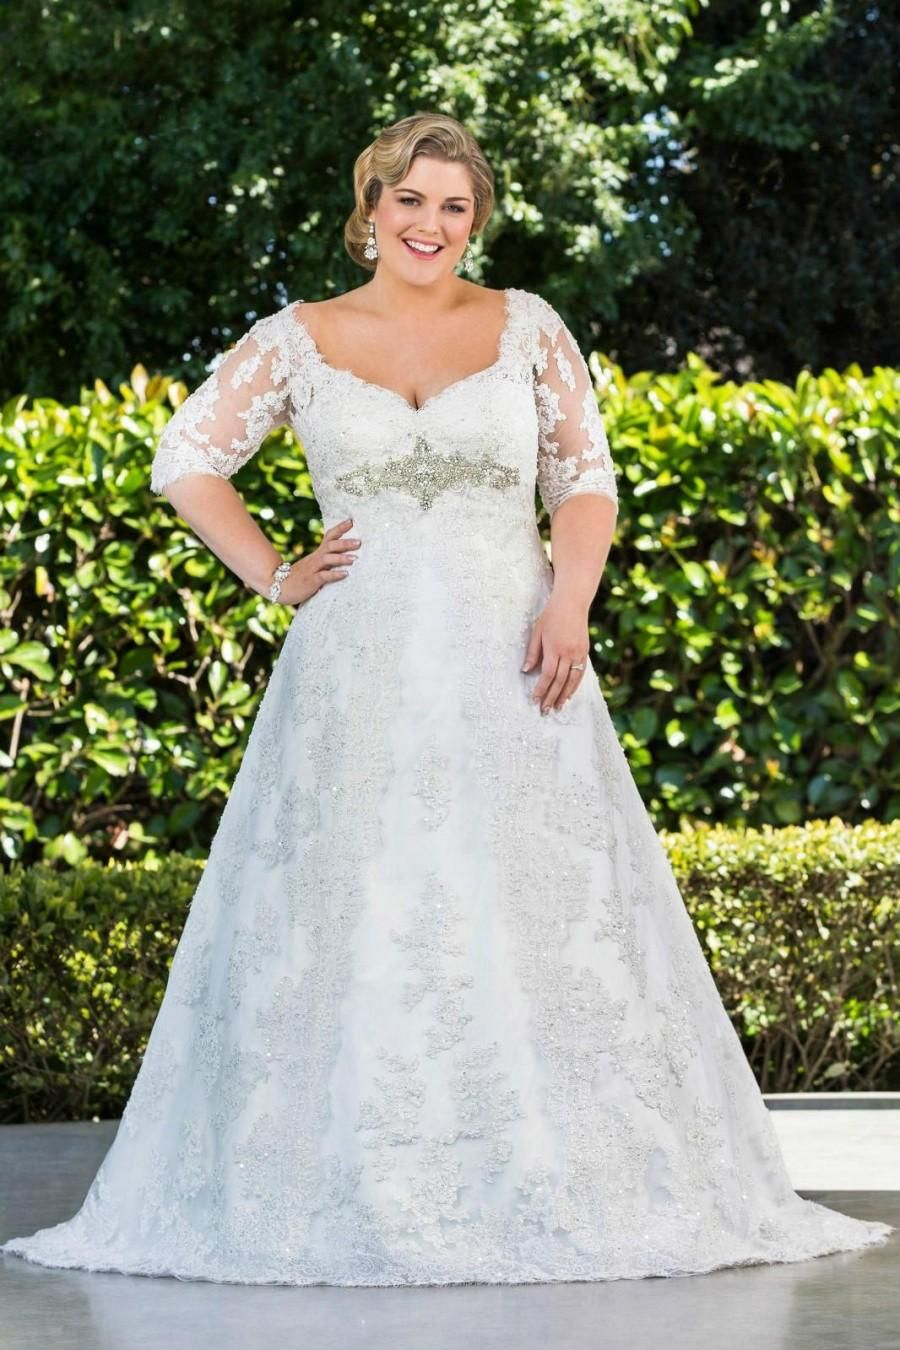 Plus size wedding reception dresses for guests  Plus Size Wedding Dresses With Long Sleeves u Gone are the days when